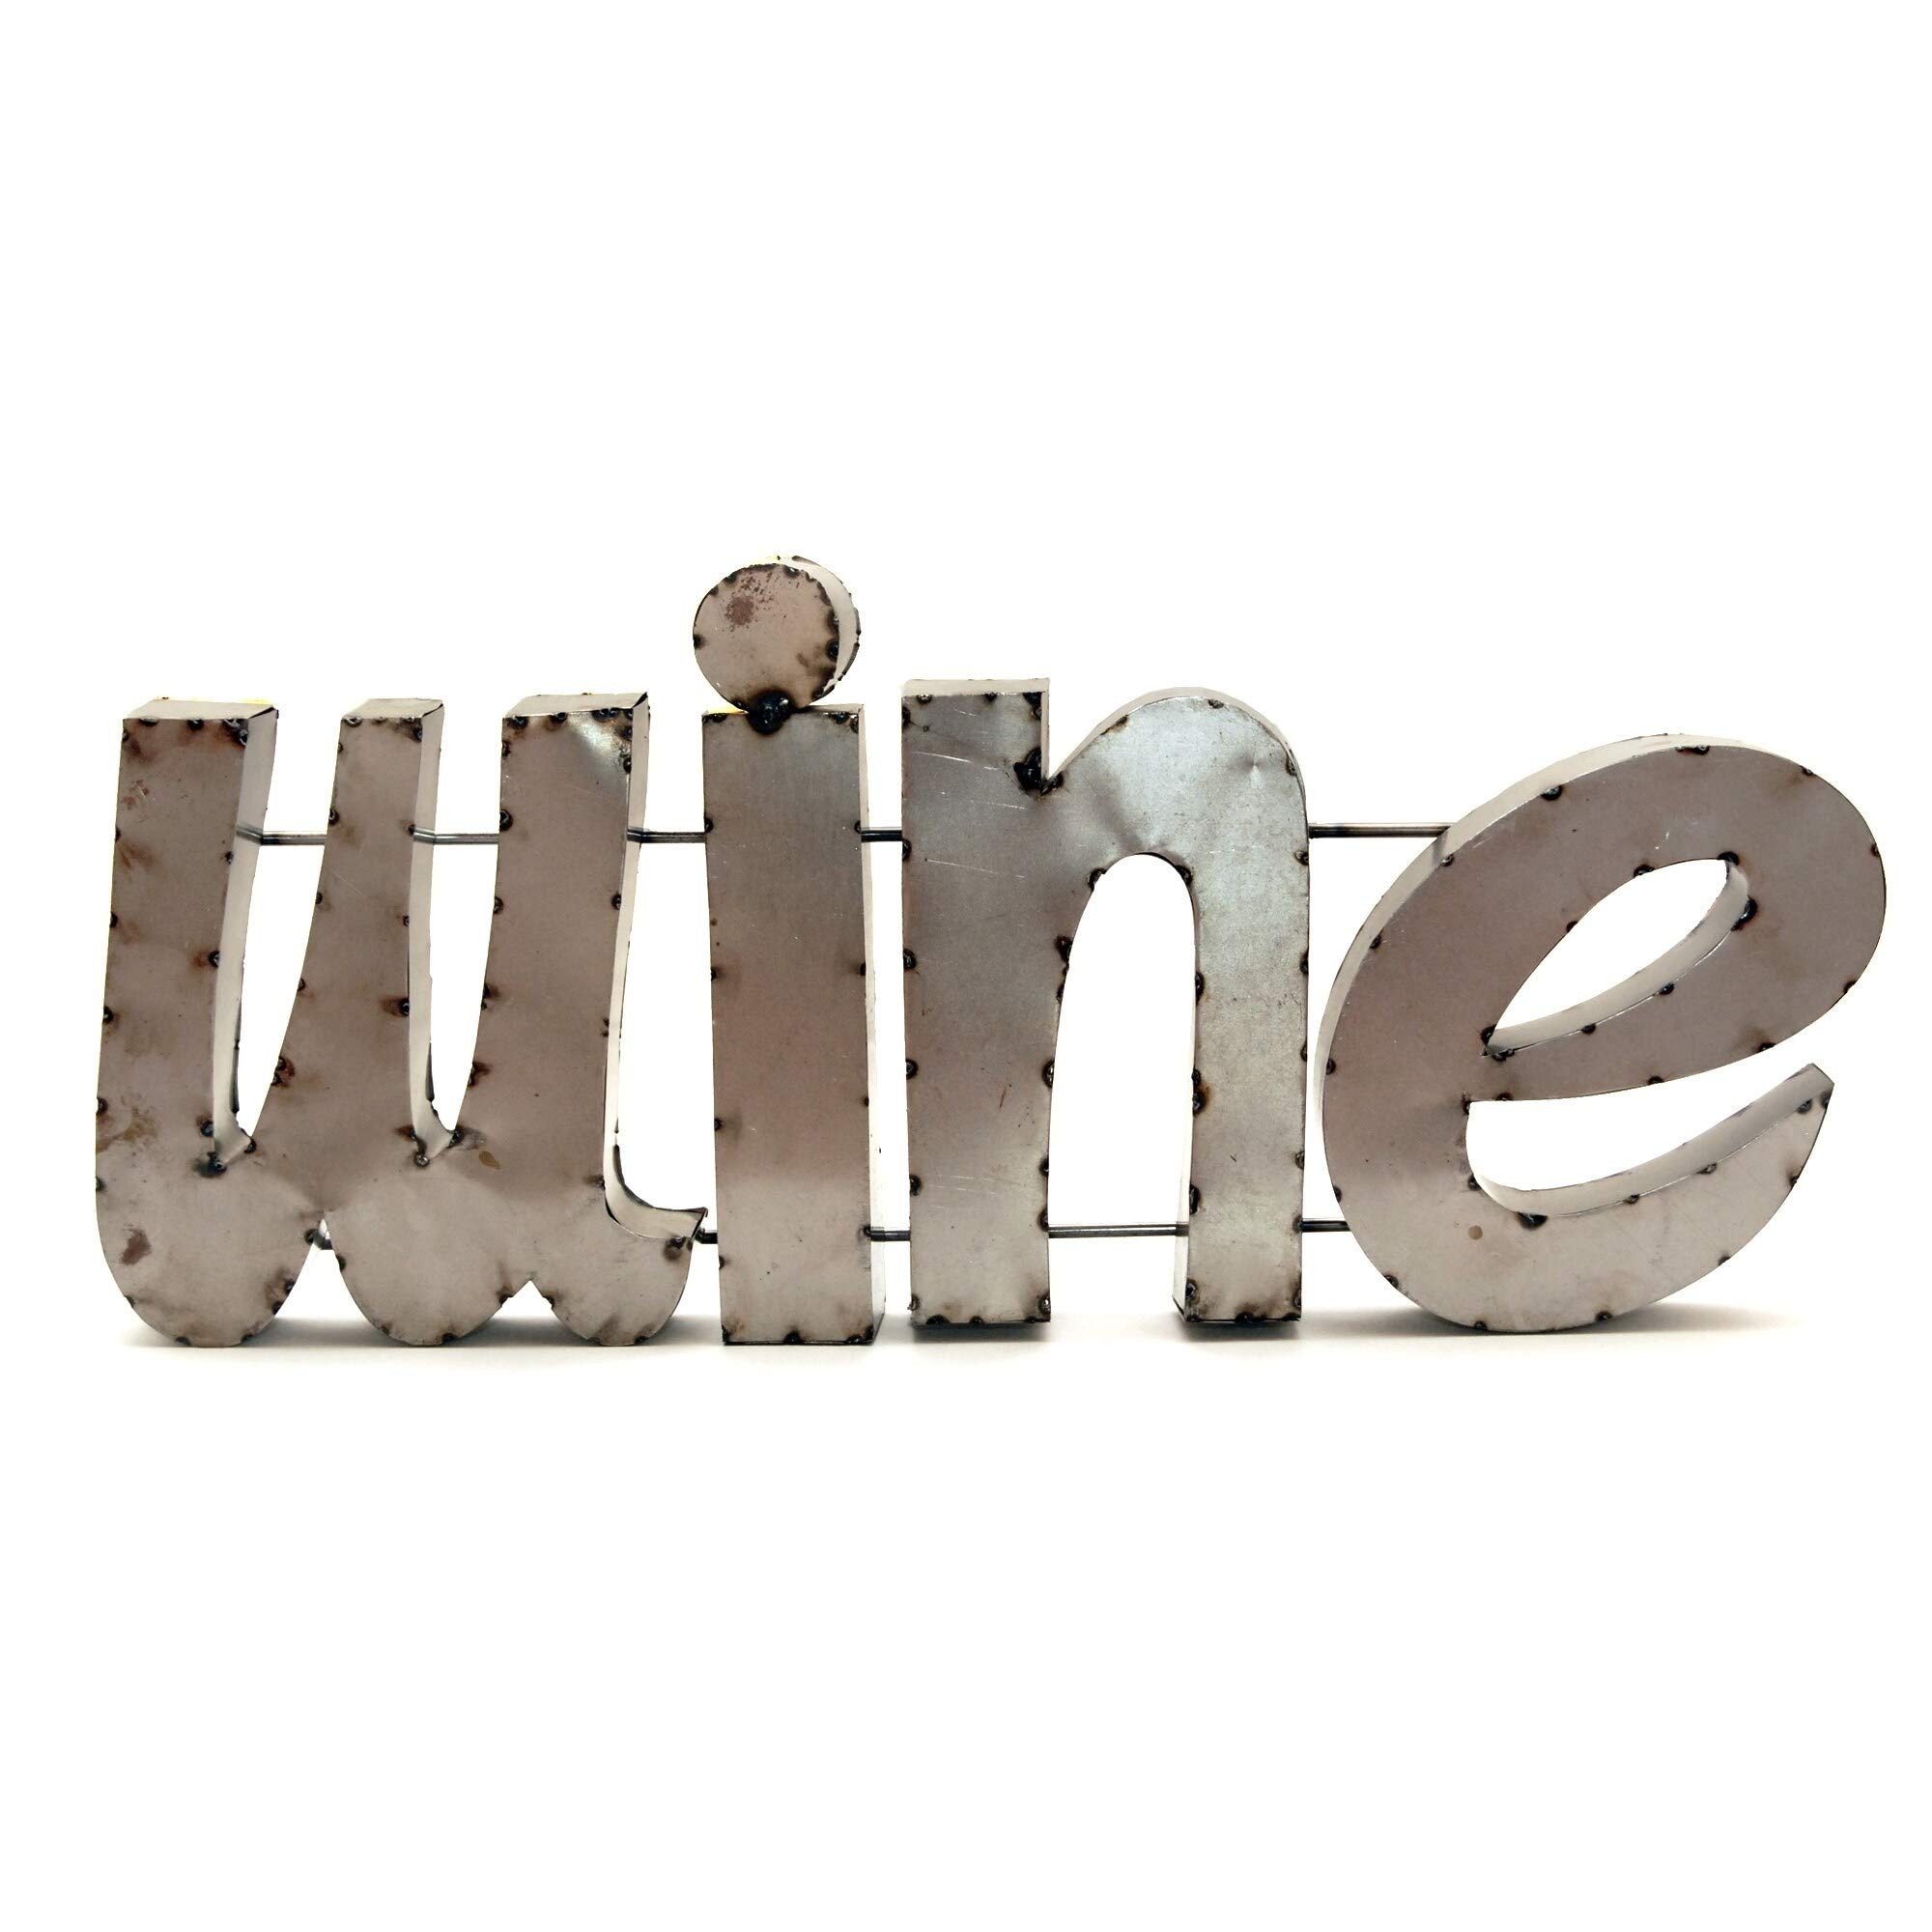 Wine W/Rebar Sign - N/a Multi Color Animals Metal Handmade by Unknown